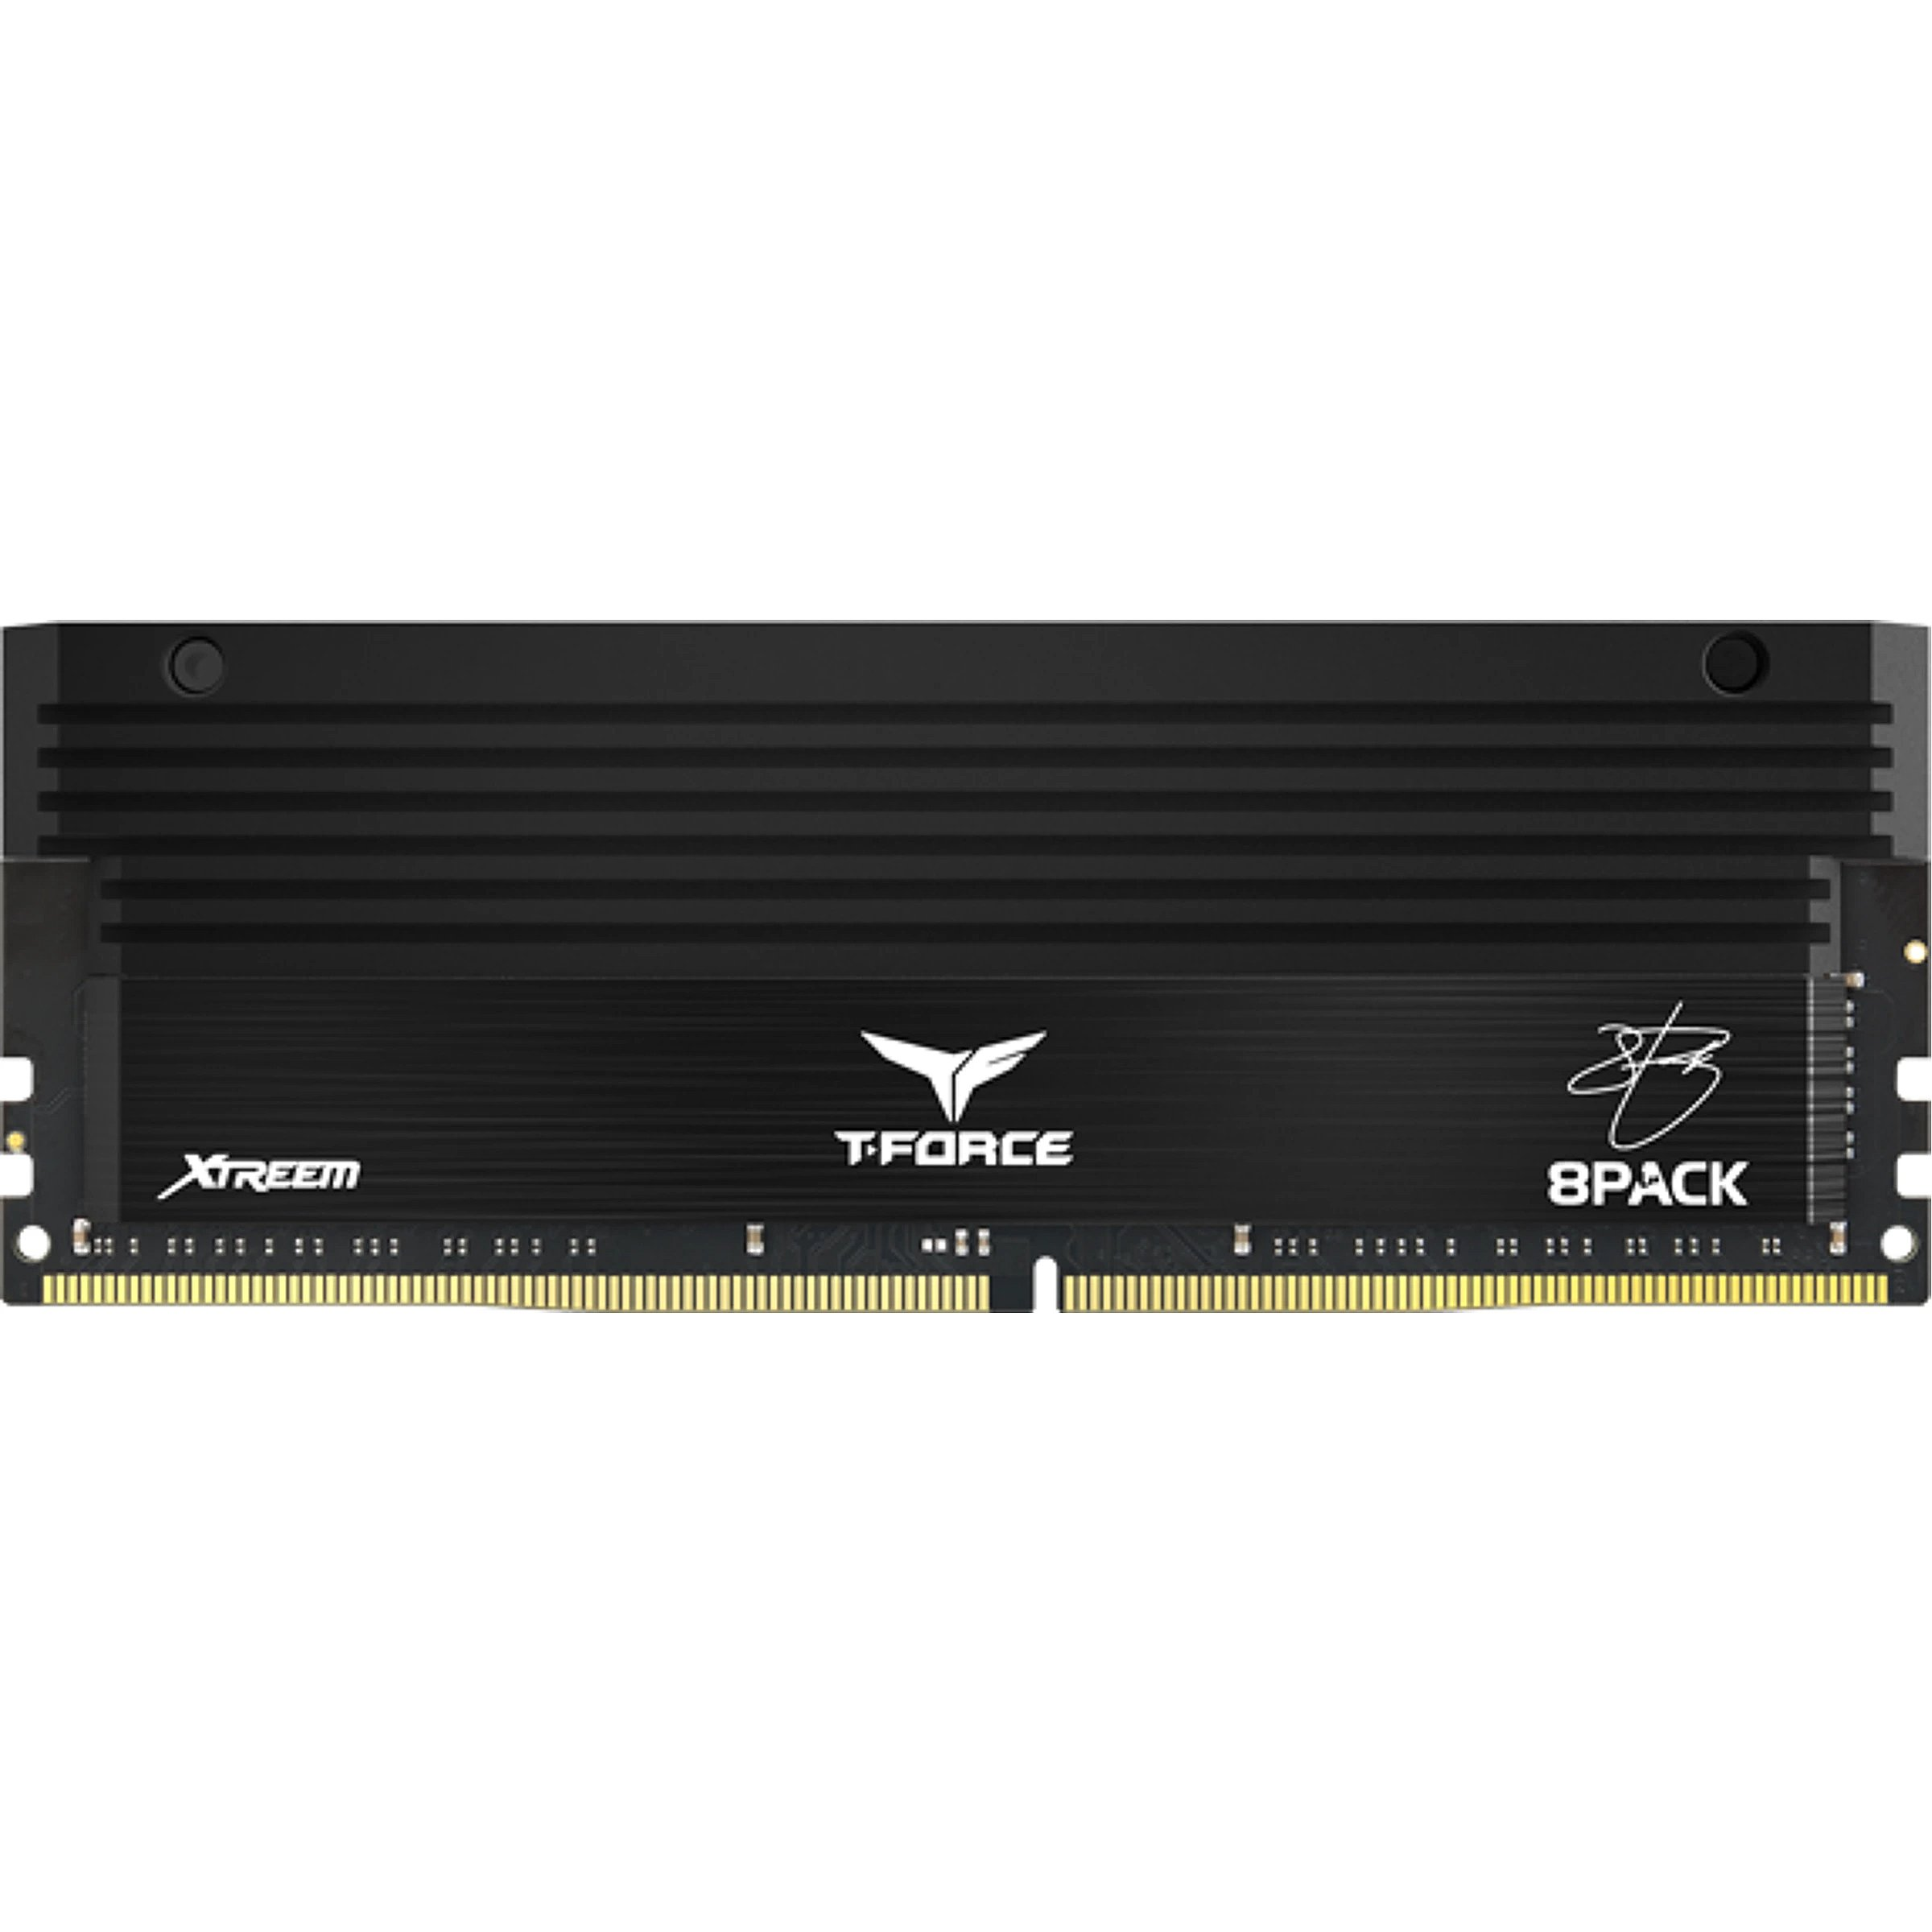 TeamGroup Xtreem 8Pack Edition, DDR4, 32GB, 3600MHz, CL16, Kit of 4